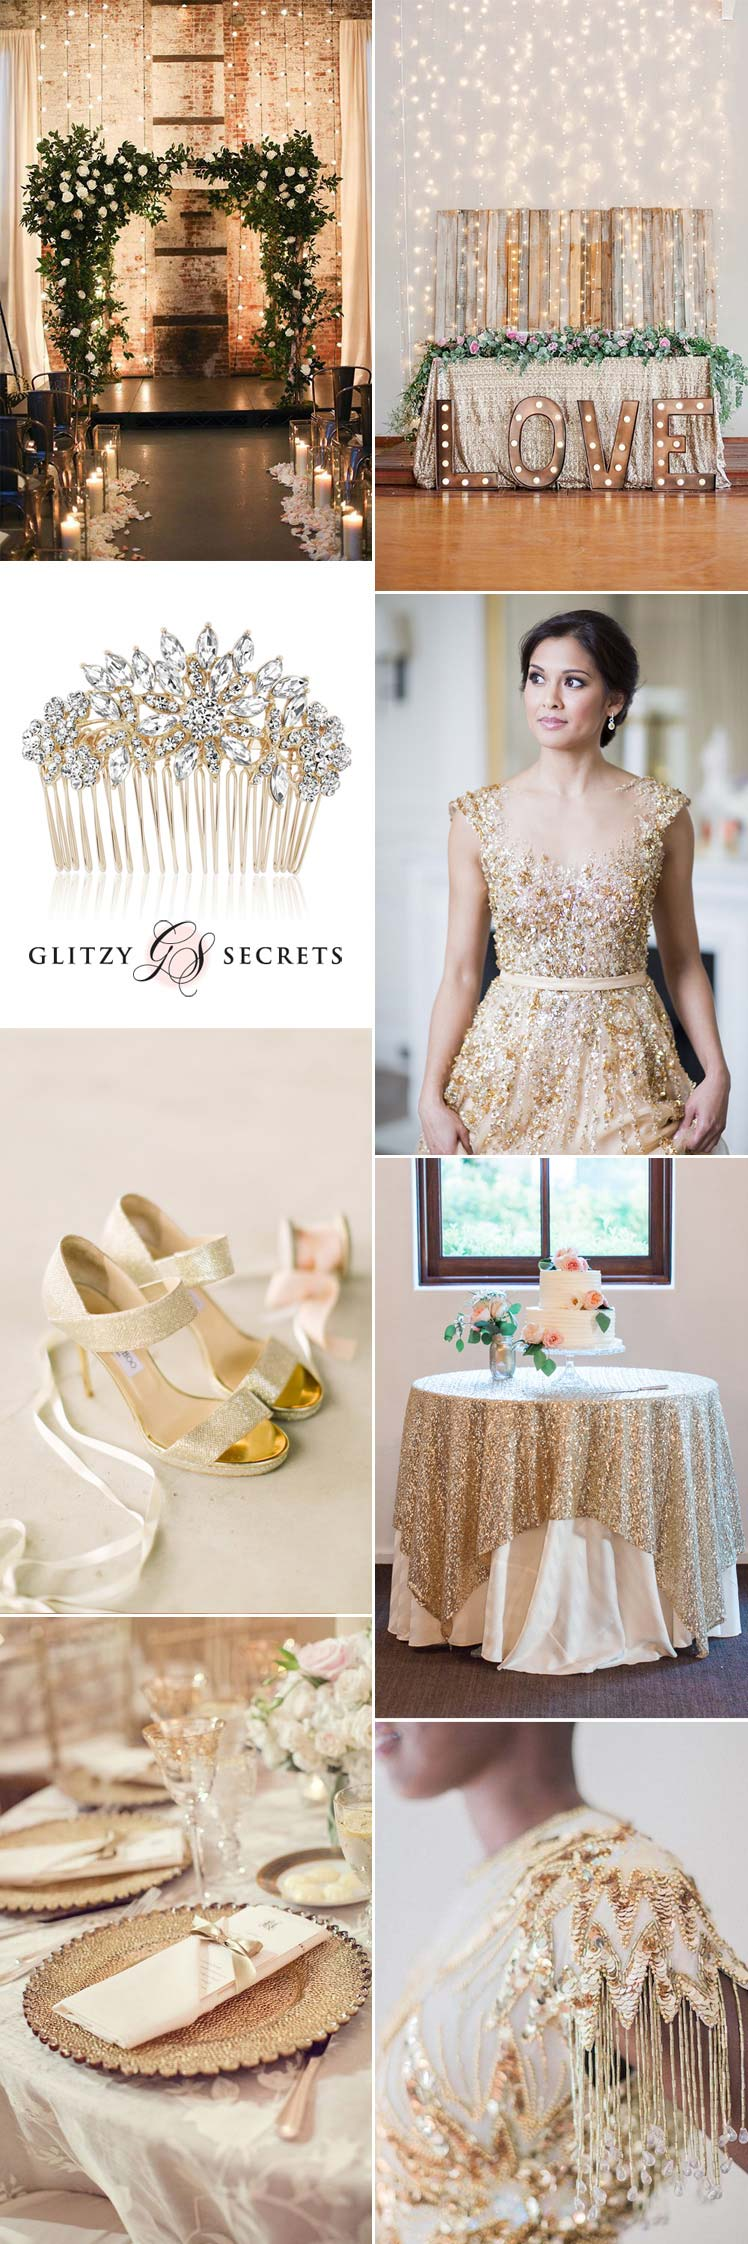 glittering gold wedding inspiration